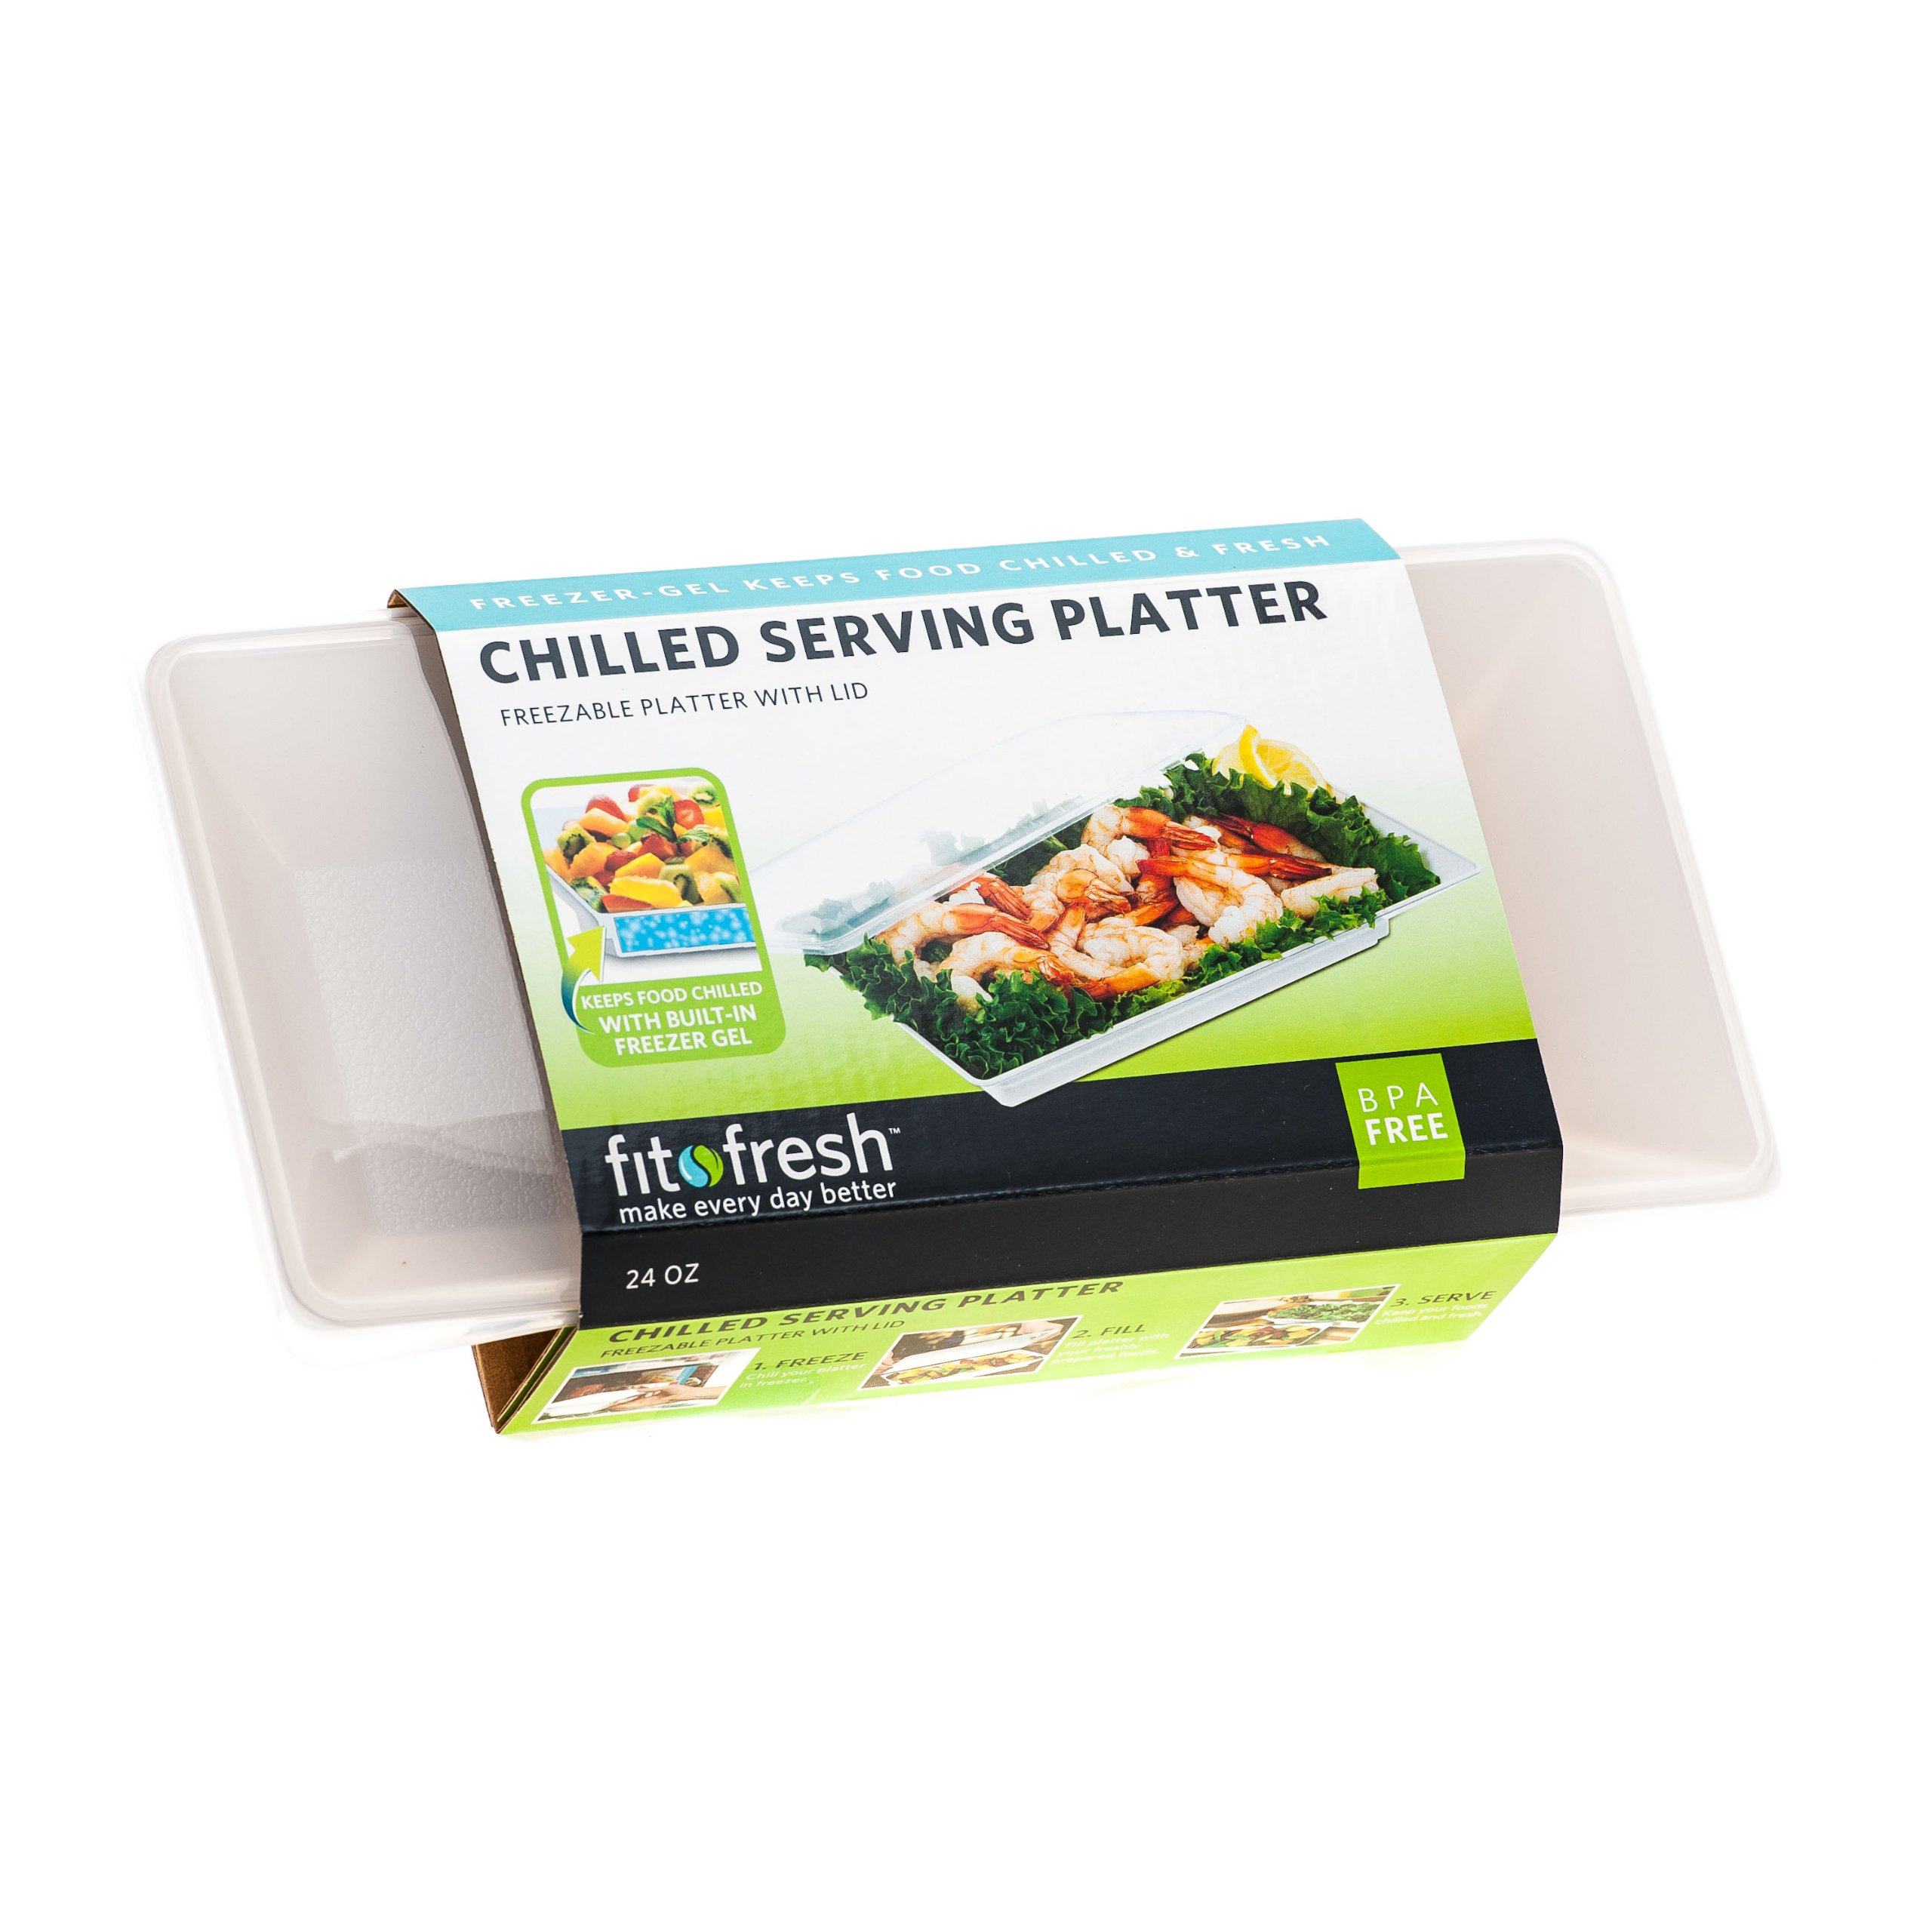 Fit & Fresh Chilled Serving Platter, 56-ounce Capacity Freezable Food Tray with Lid , BPA-Free, Freezer/Microwave Safe, Perfect for Party, Gathering, Food Storage by Fit & Fresh (Image #3)